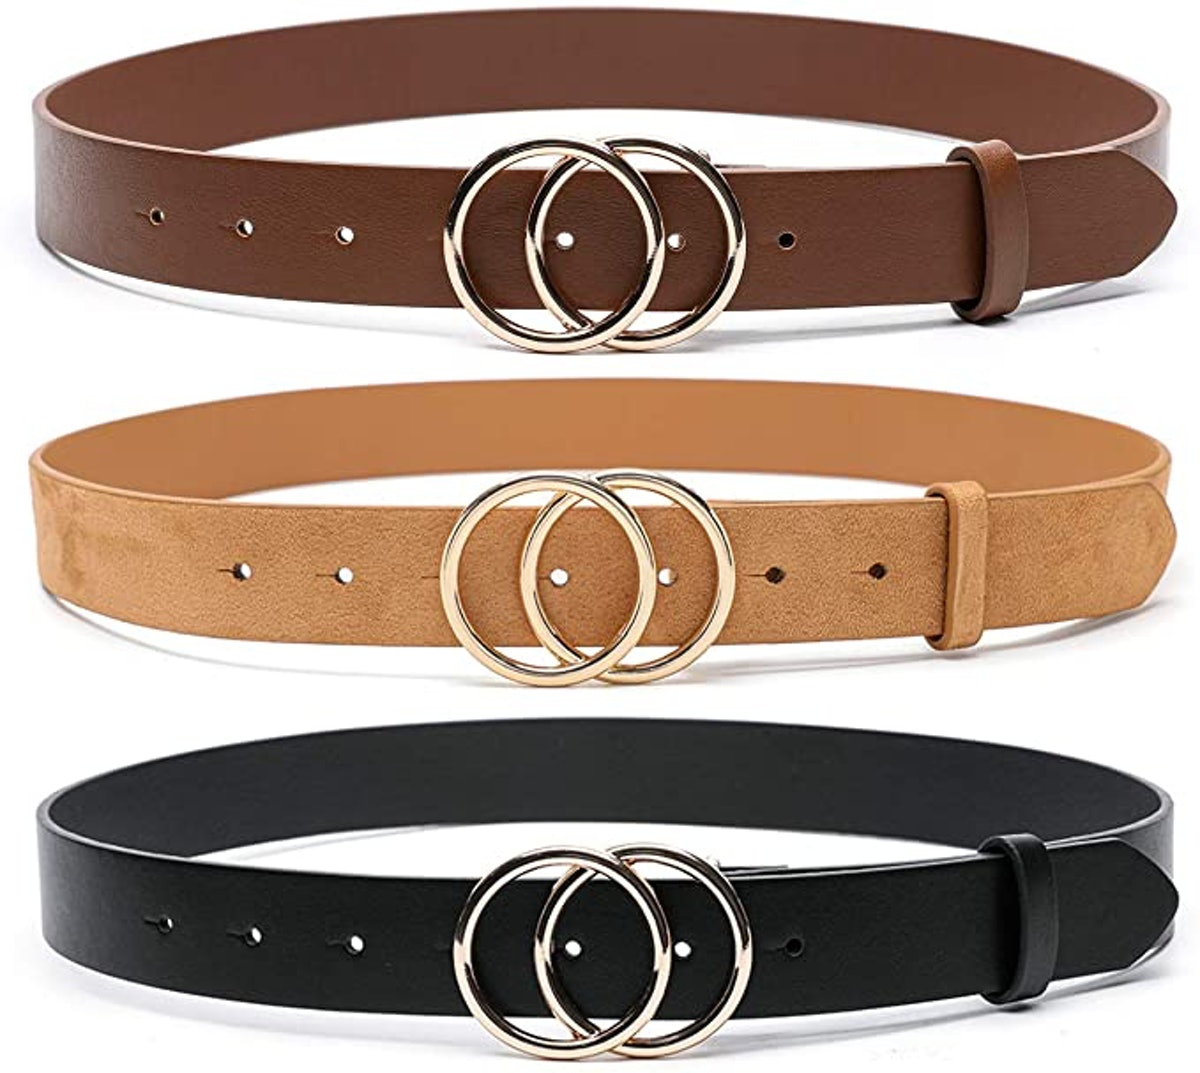 MORELESS Faux Leather Belts (3-Pack)